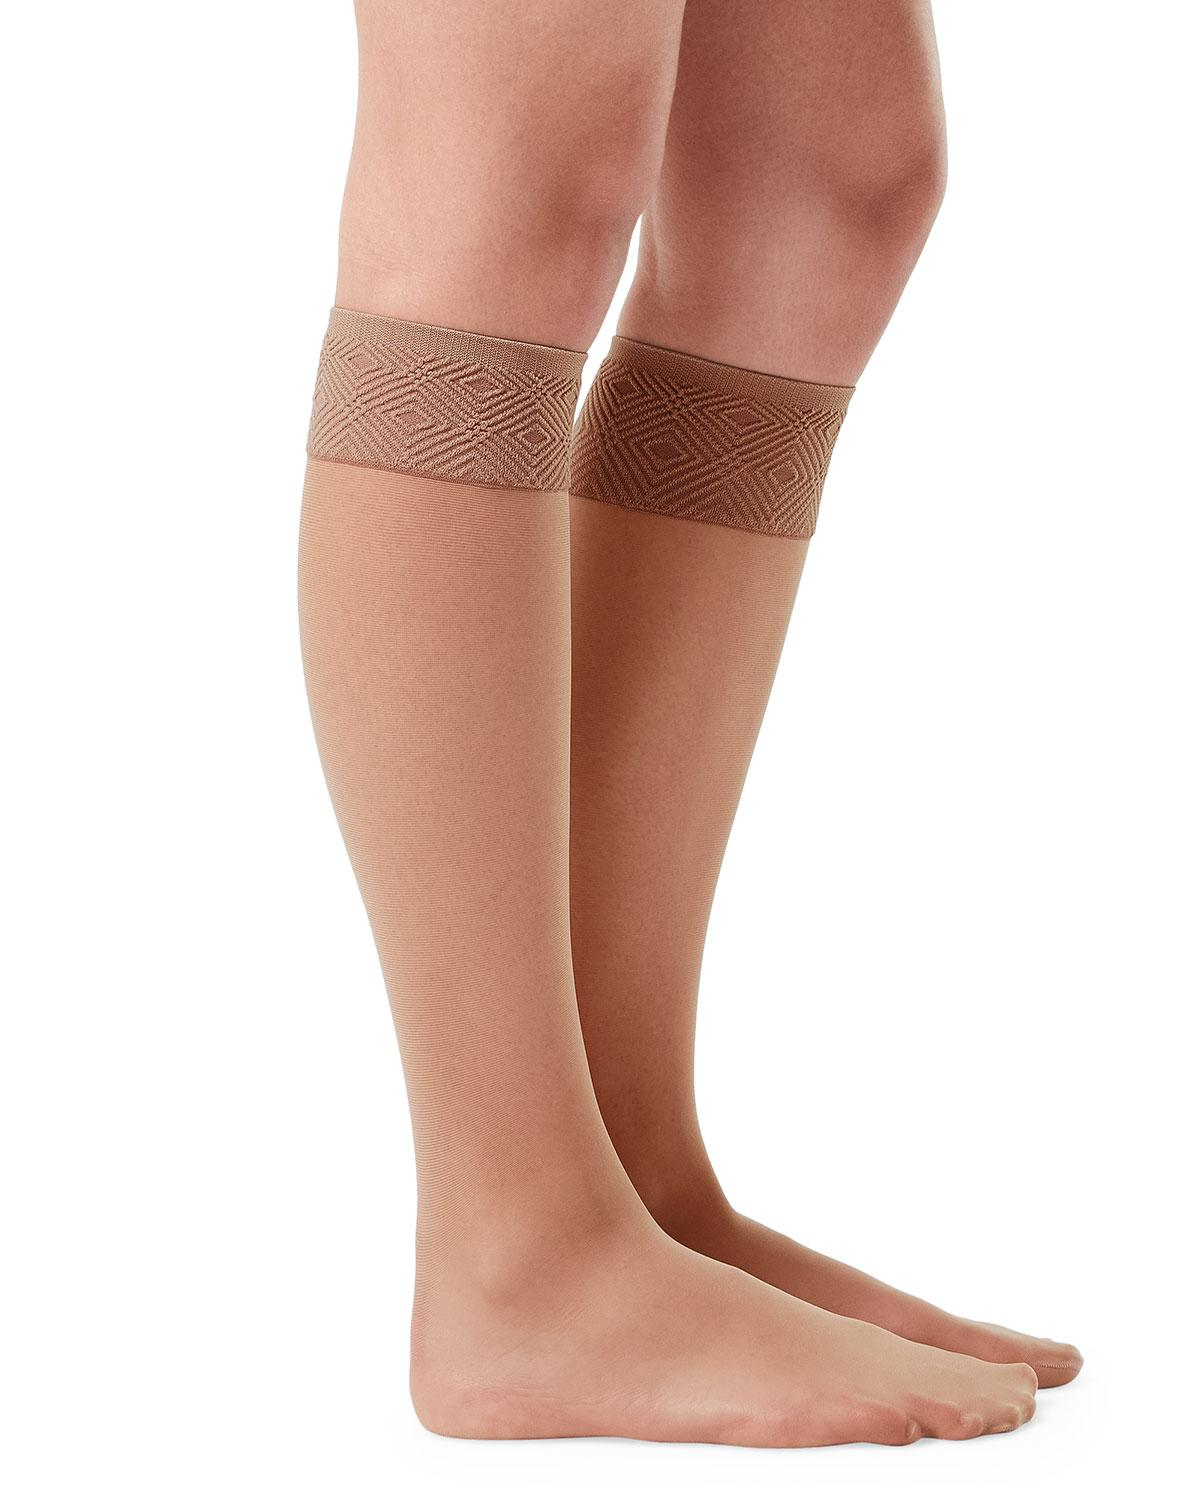 4f8f152d041 Lyst - Spanx Sheer Knee-high Stockings in Natural